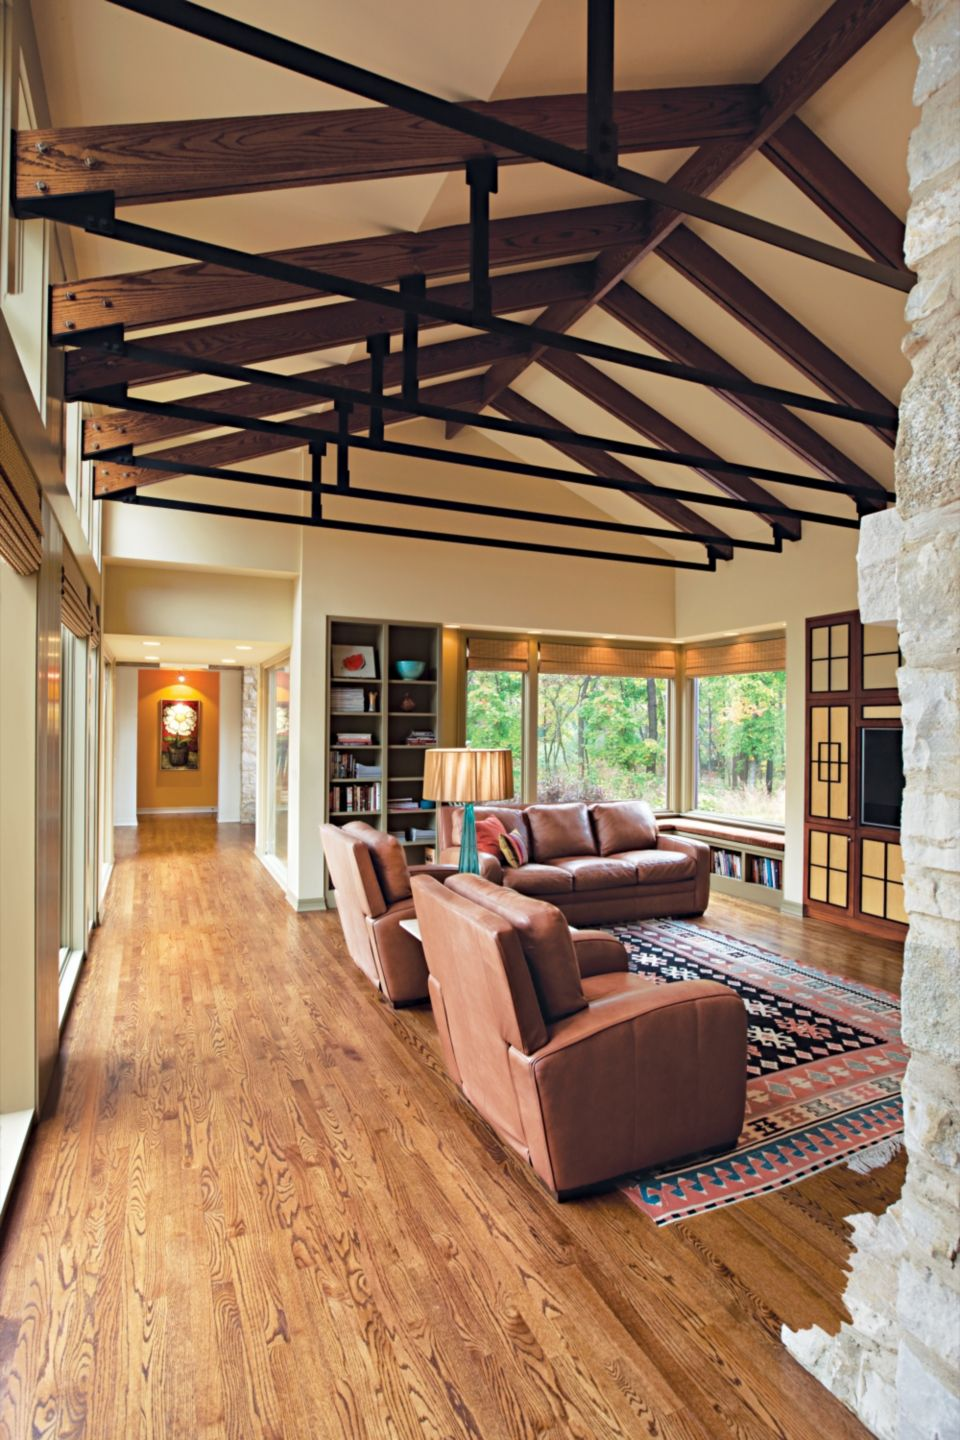 Country Cream Living Room with White Oak Trusses